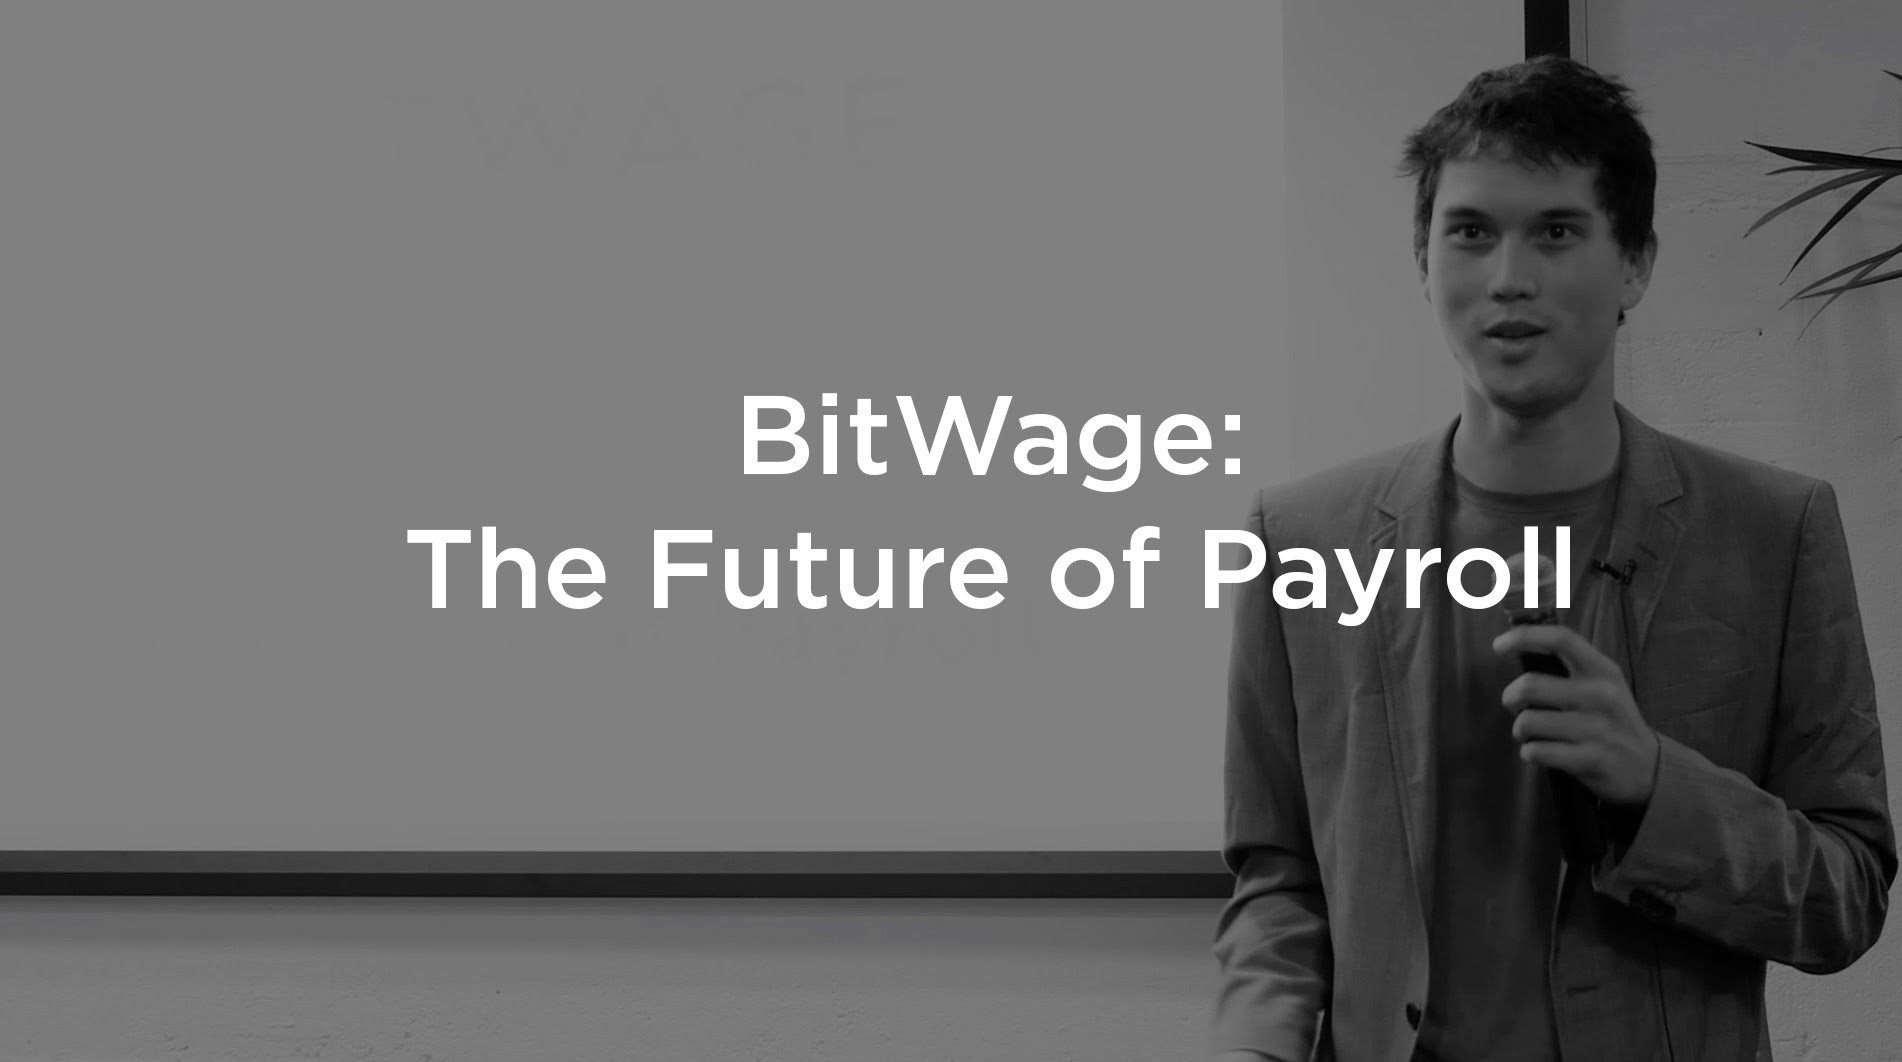 Jonathan_Bitwage_interview_cover_Bitcoinis